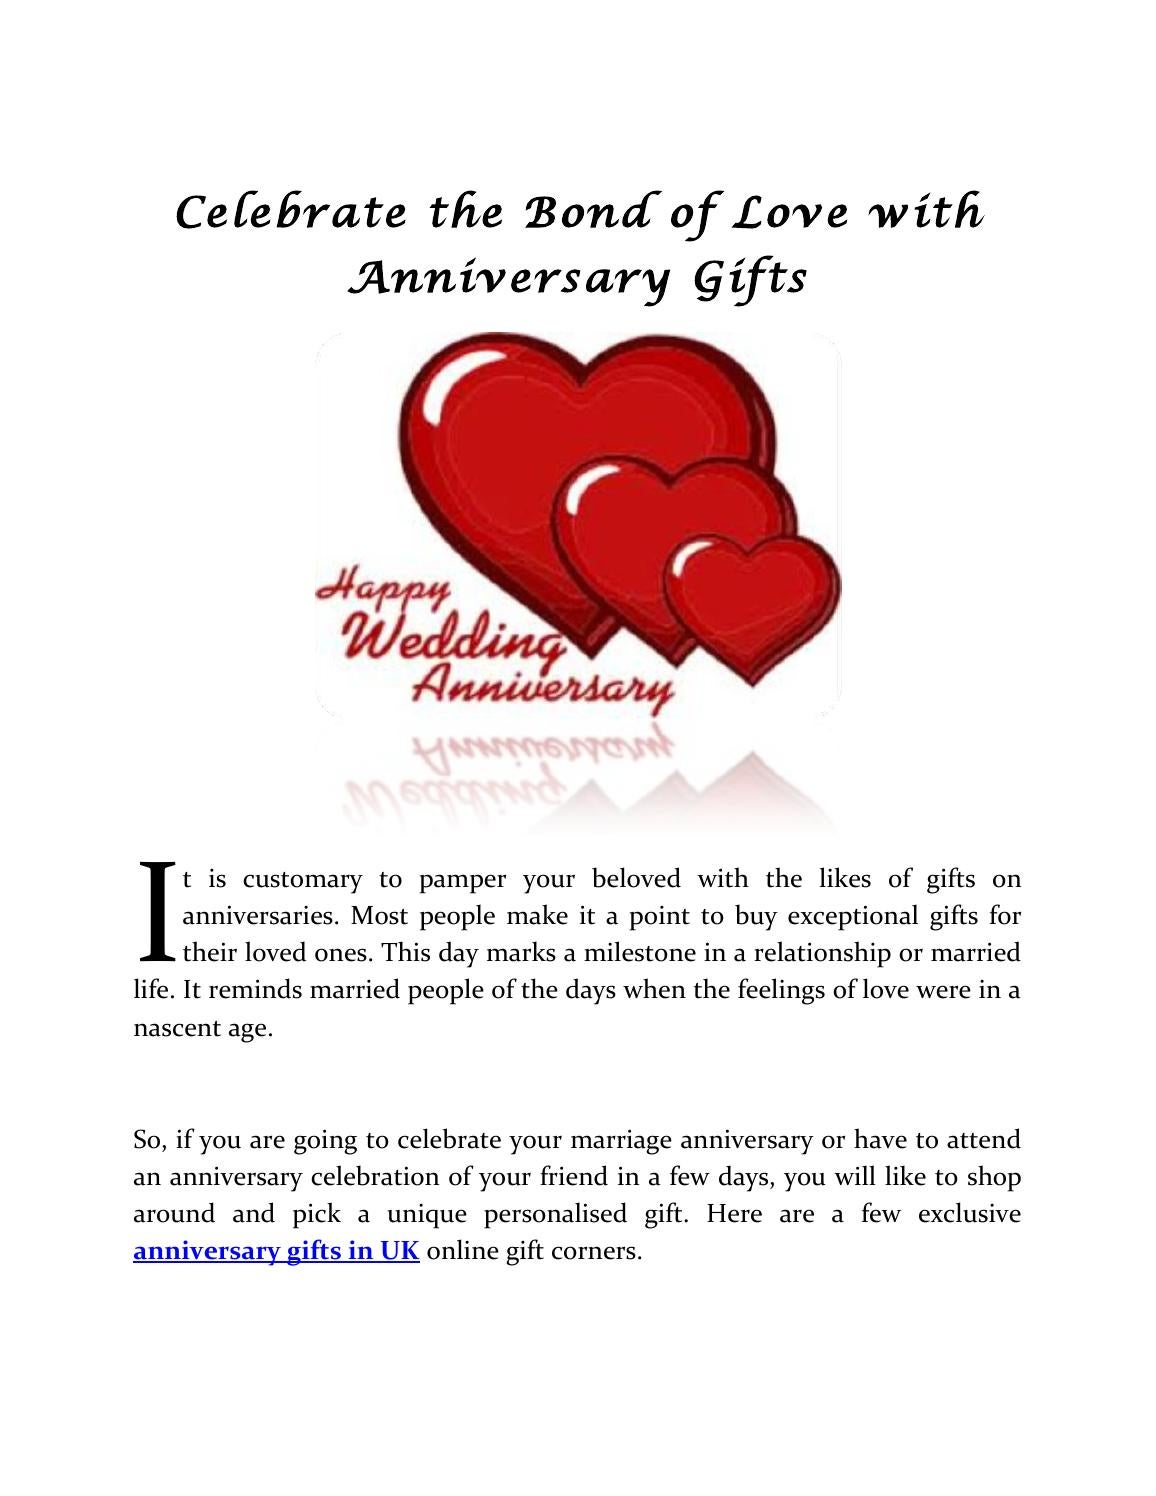 Celebrate The Bond Of Love With Anniversary Gifts By Suzy